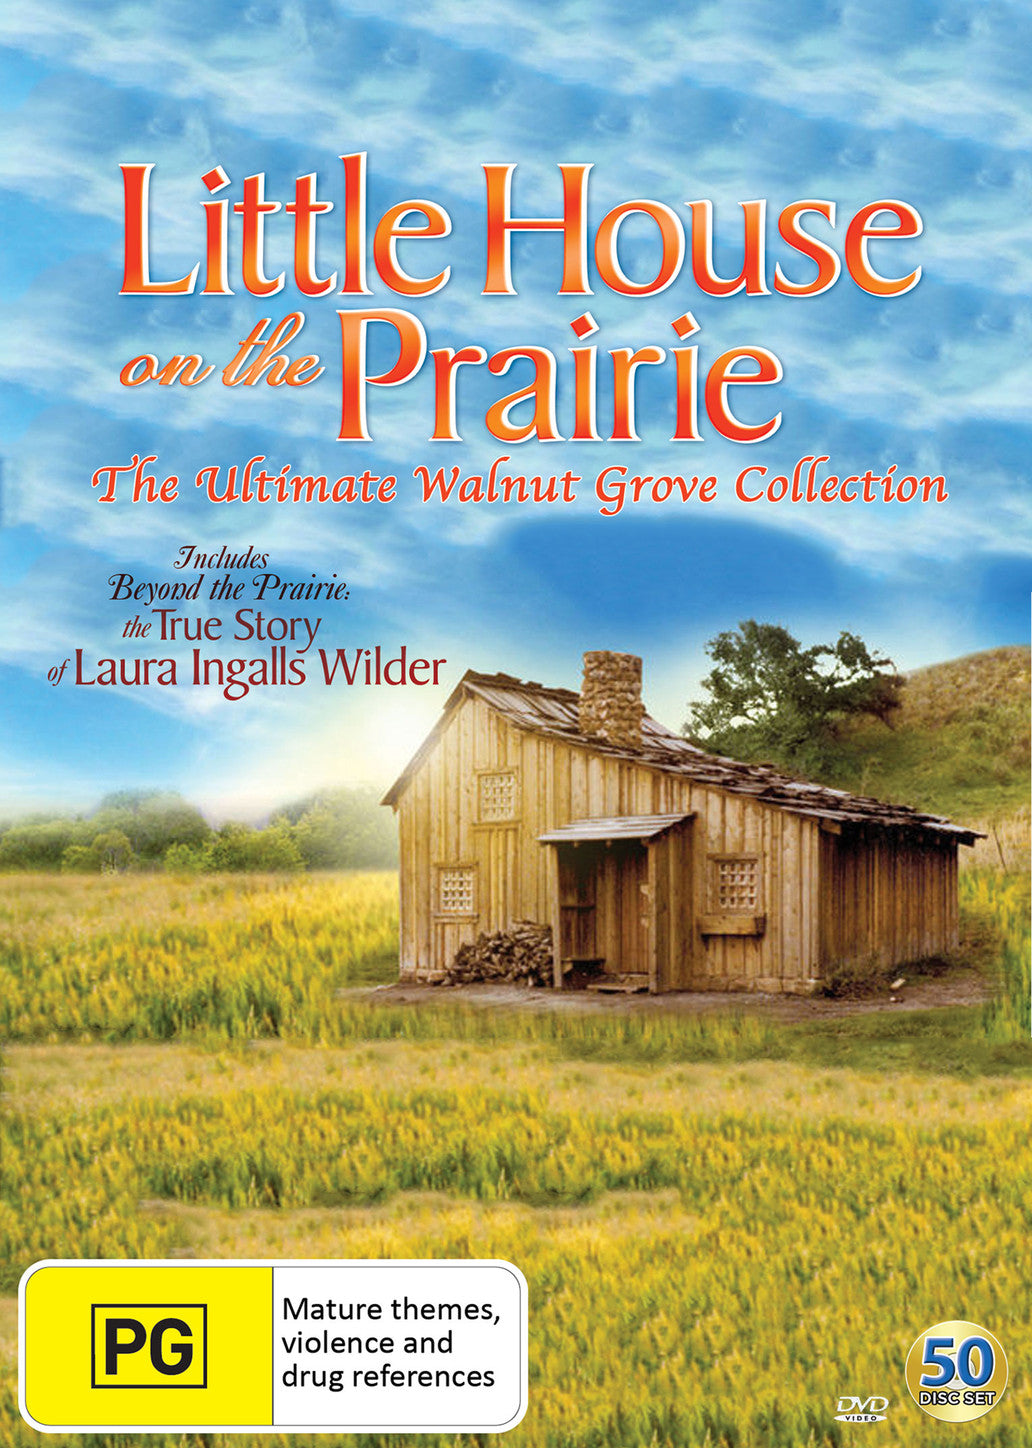 Little House on the Prairie - Walnut Grove Collection (Restored & Remastered)